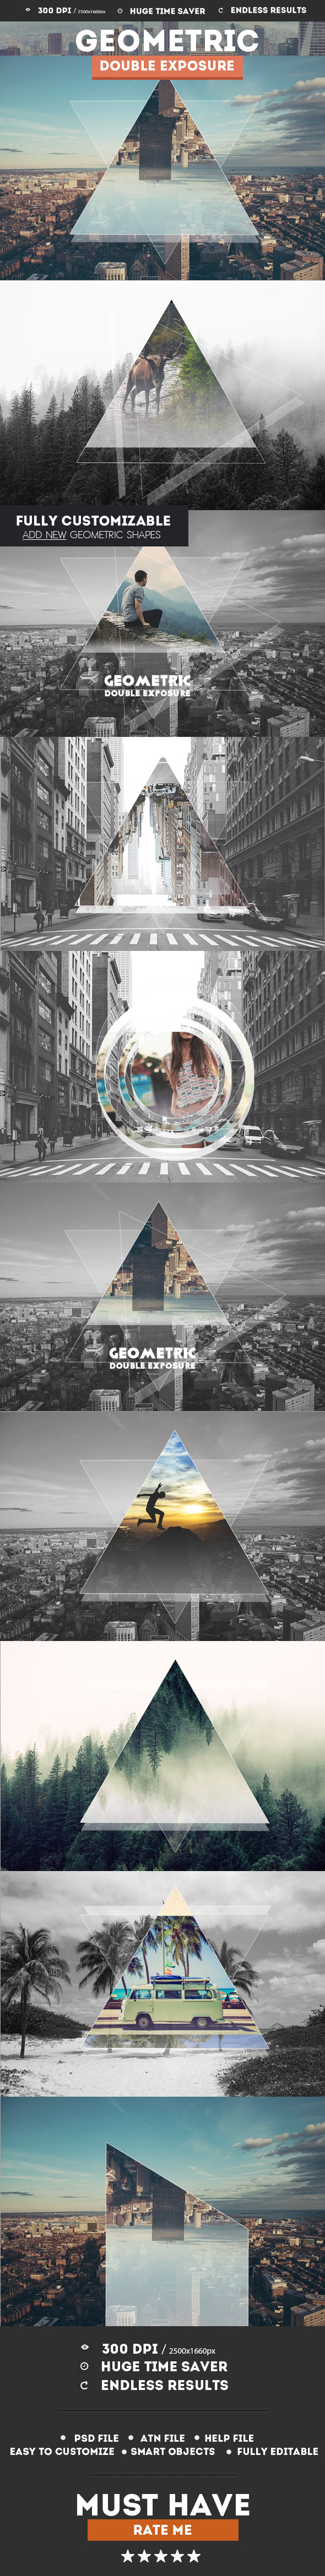 GraphicRiver Geometric Double Exposure Photoshop Creator 11525418